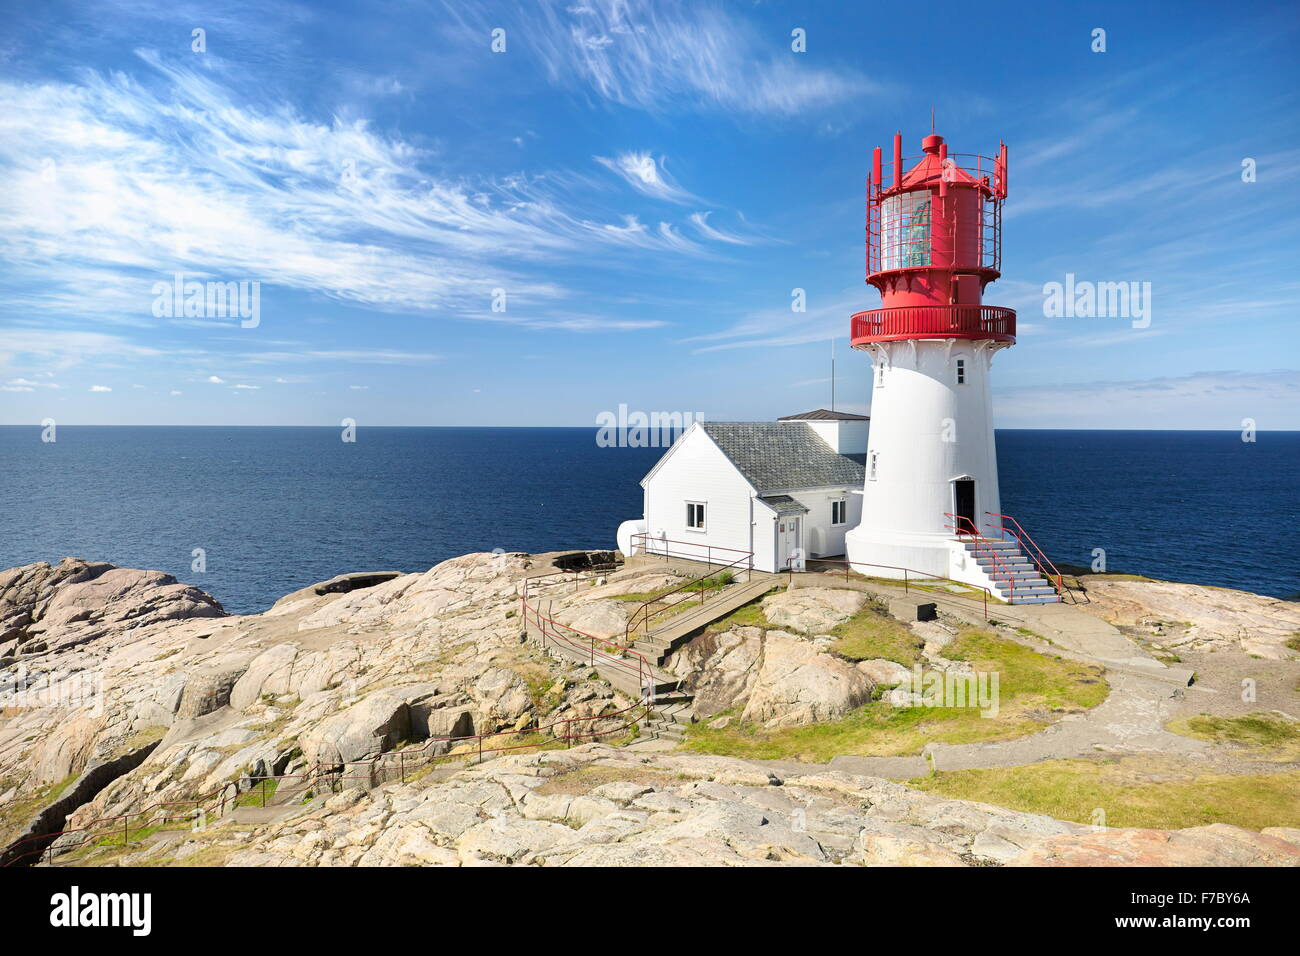 Lighthouse at Lindesnes, Norway - Stock Image